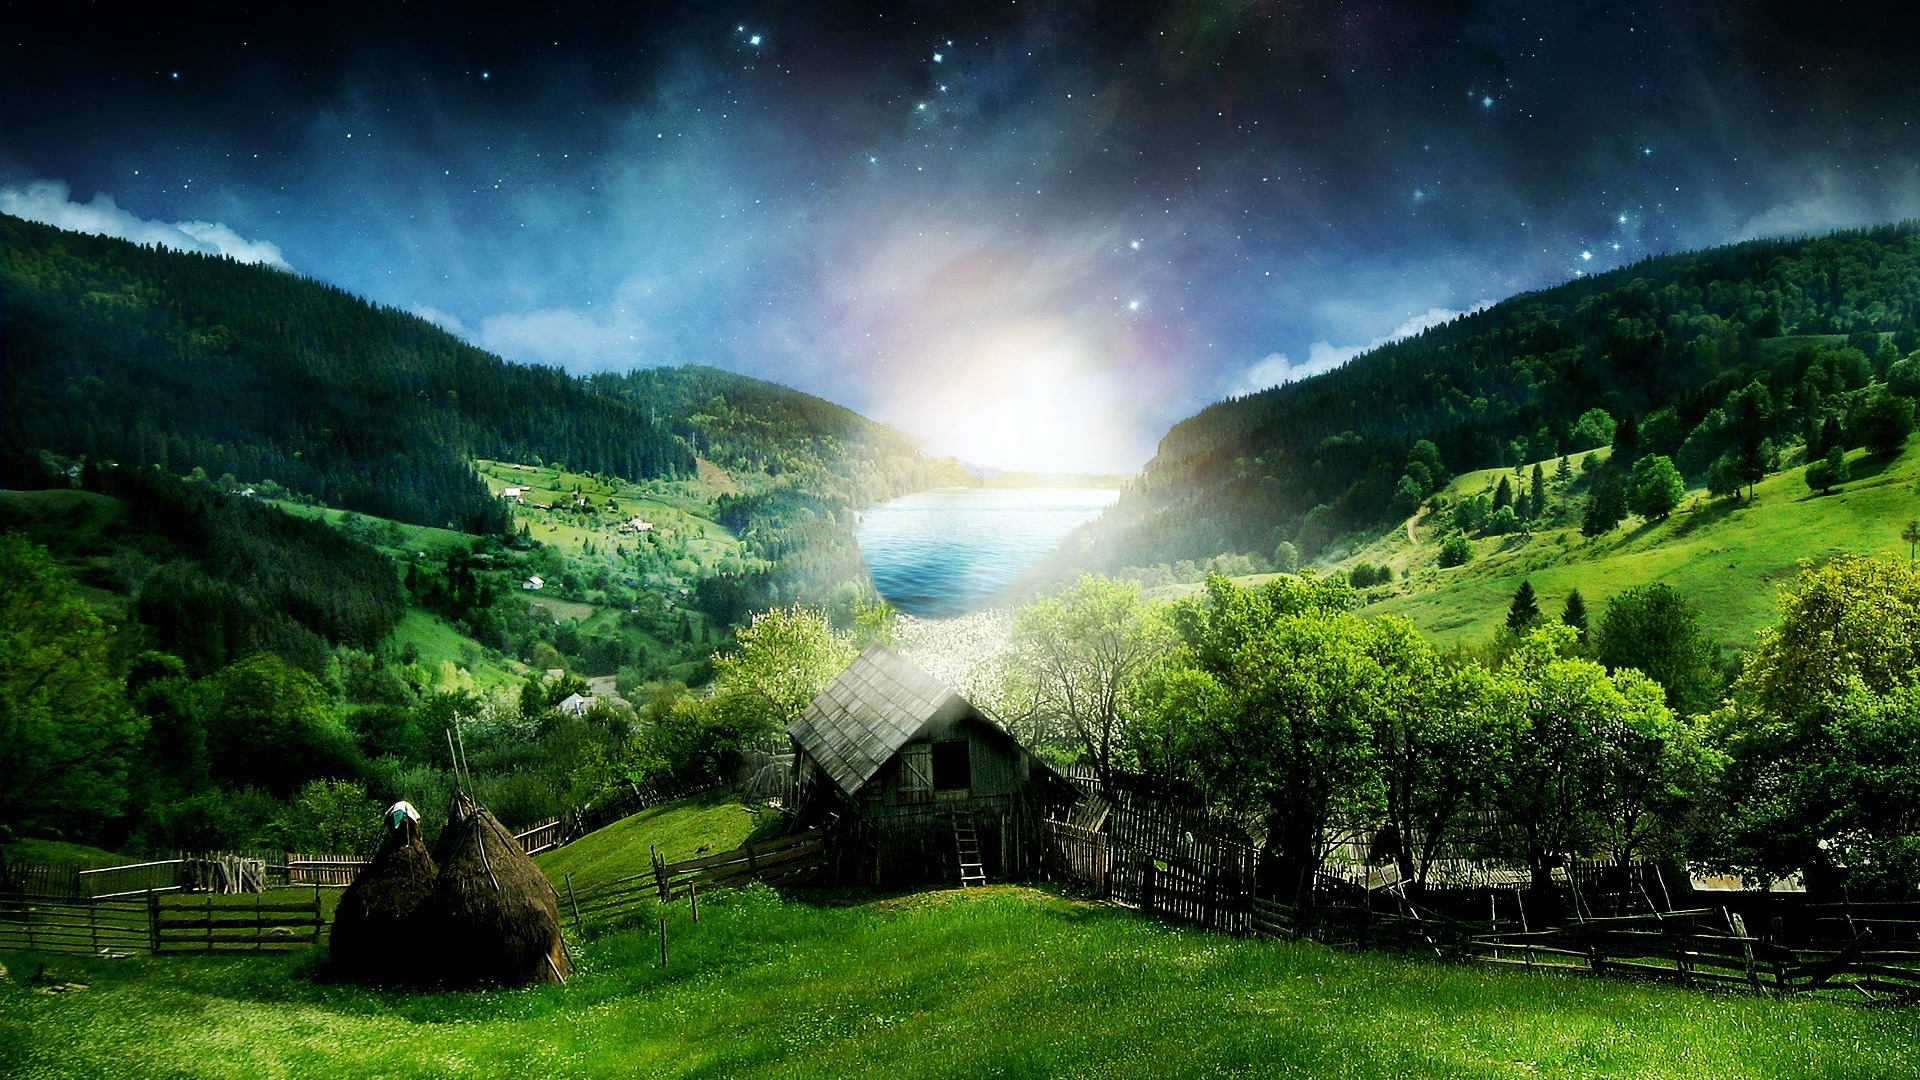 HD Widescreen Landscape Wallpapers 16   1920x1080 Wallpaper Download 1920x1080